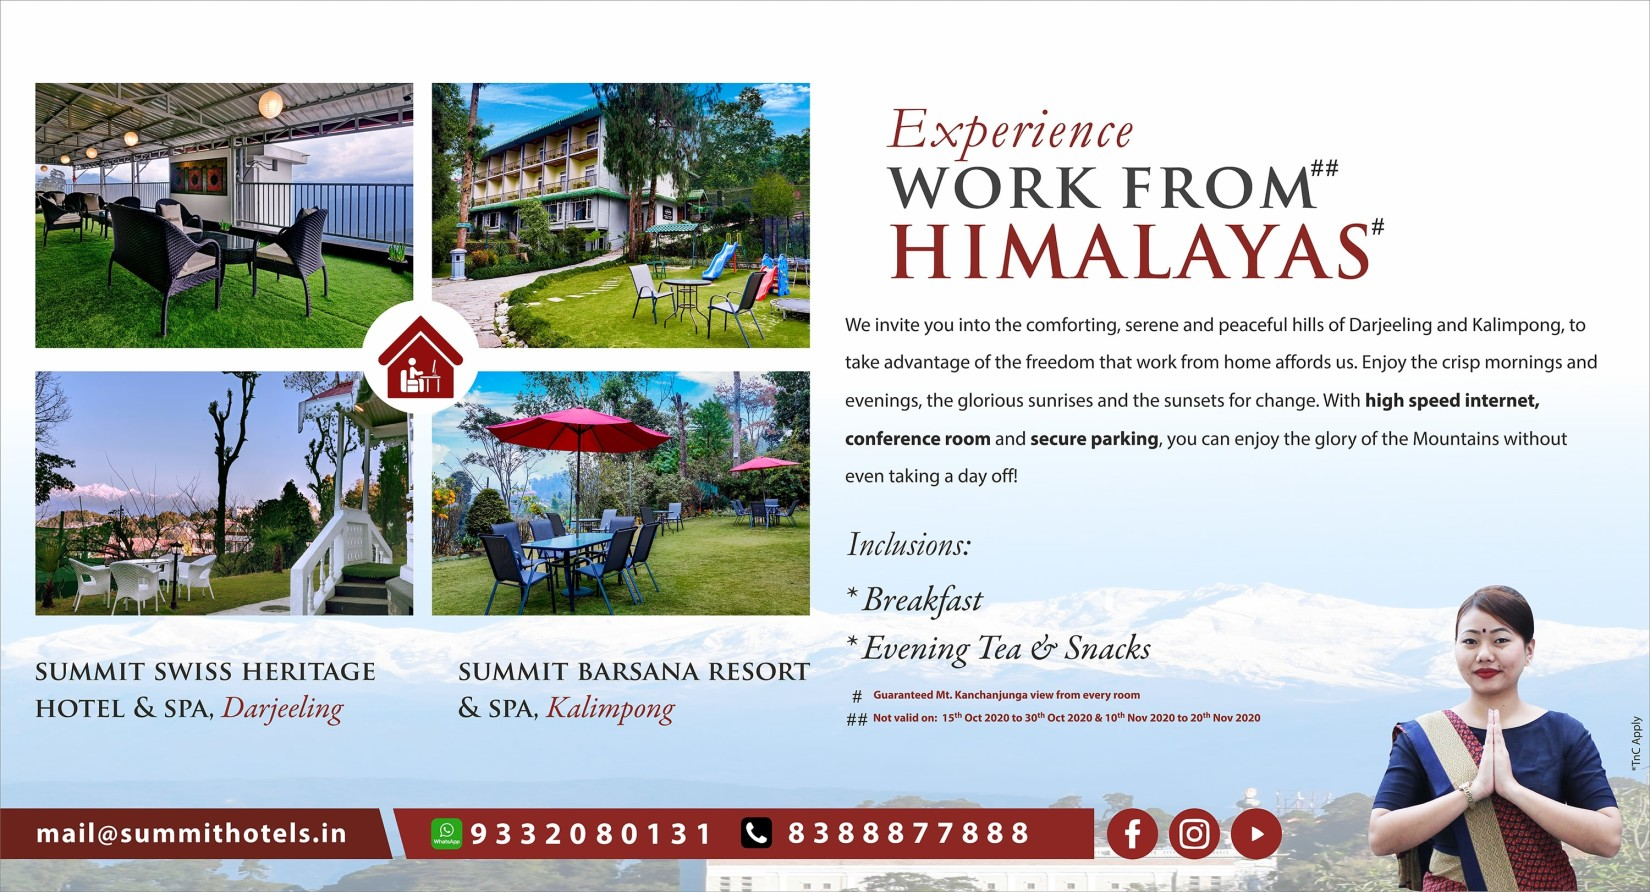 Work From himalayas SM Post 1 jpg